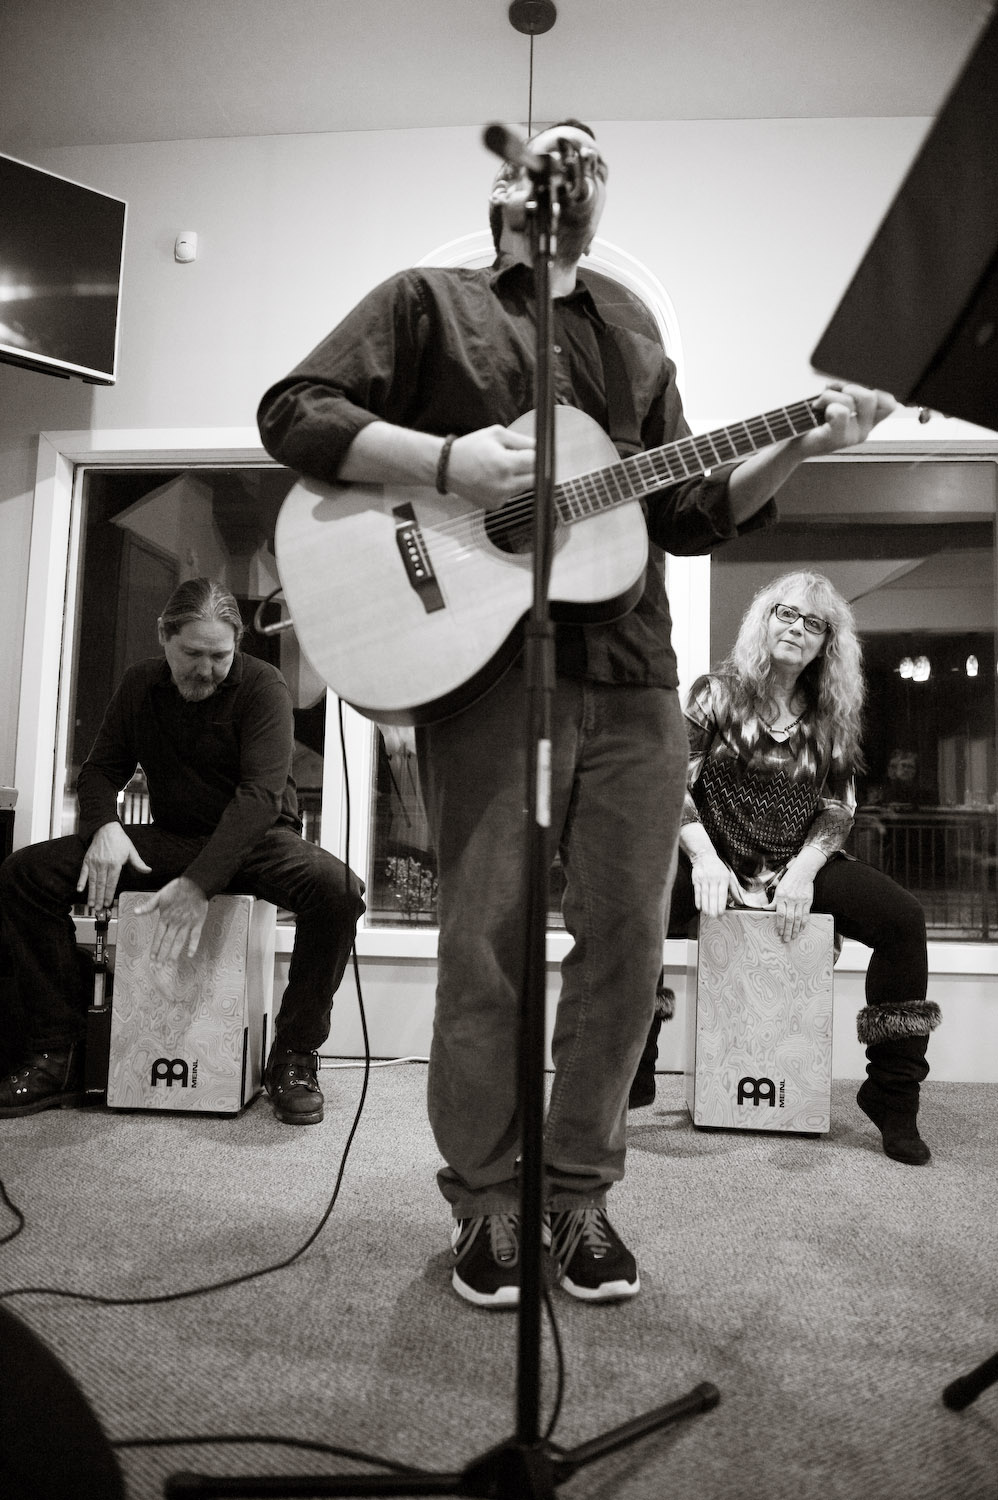 Aaron Whited,  Bruce Killen  and  Sherri Killen  performing together at Serenity Coffee House's open mic night, earlier this year.